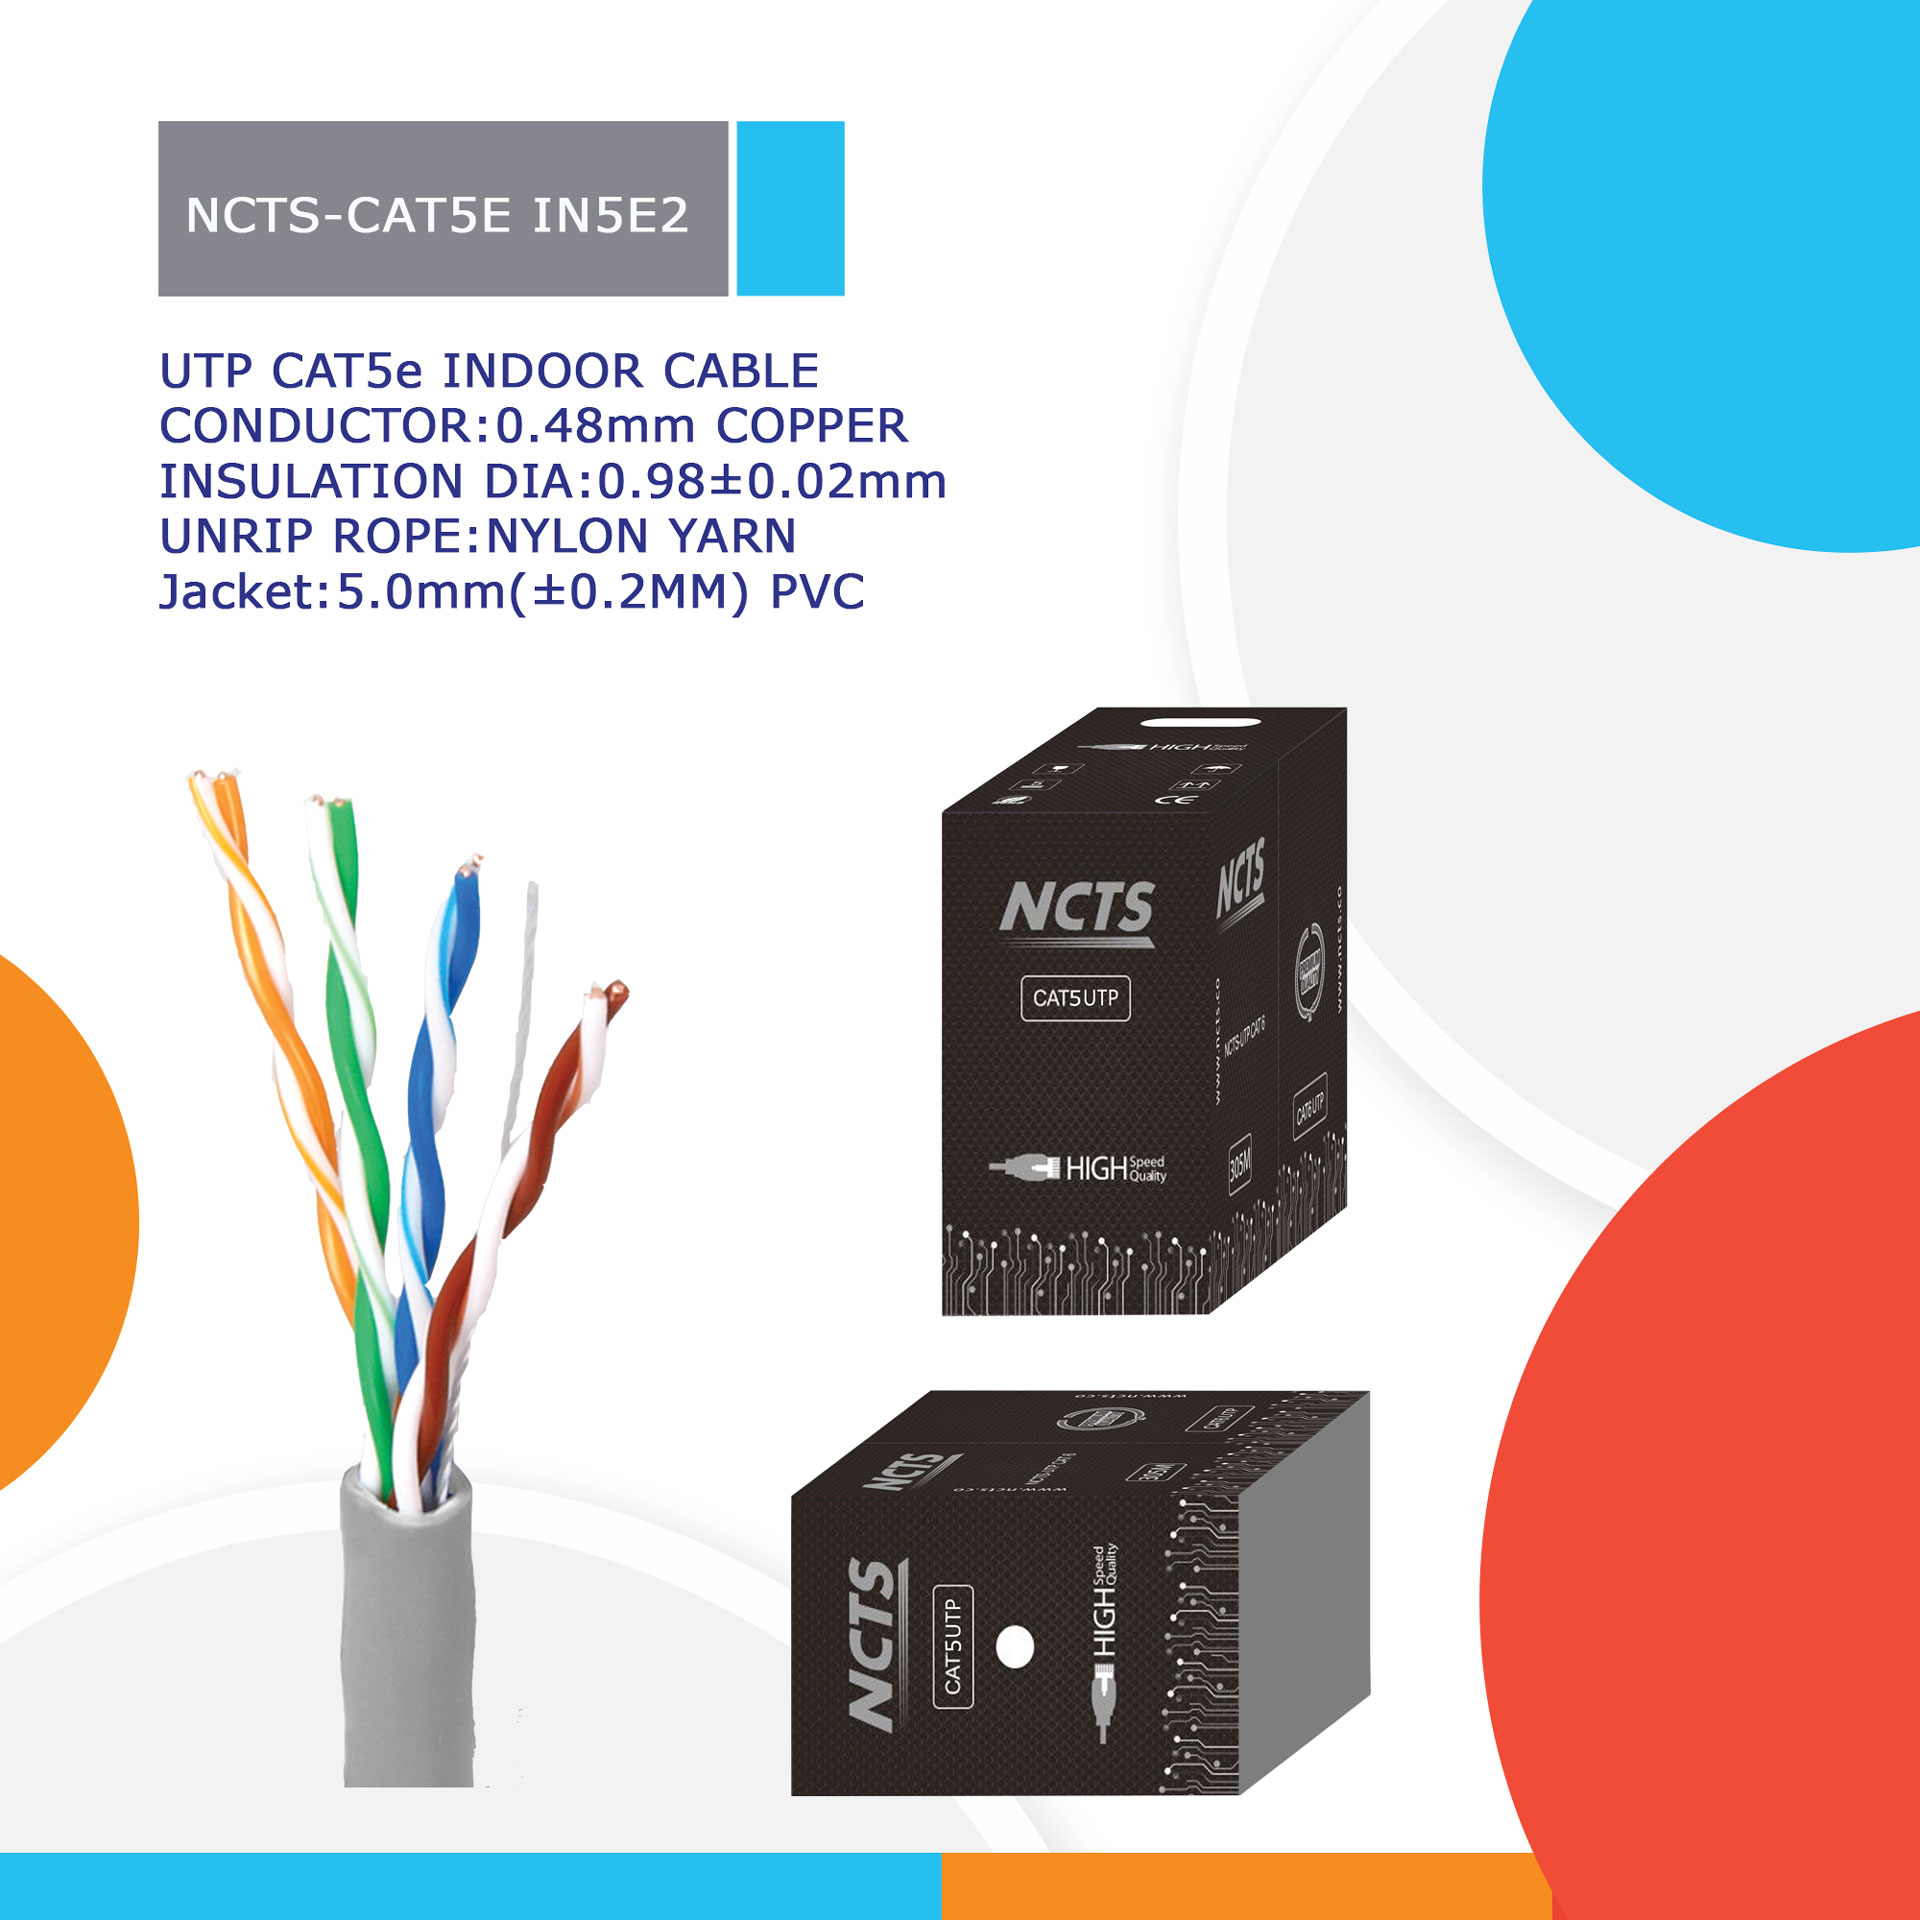 NCTS-CAT5E IN5E2